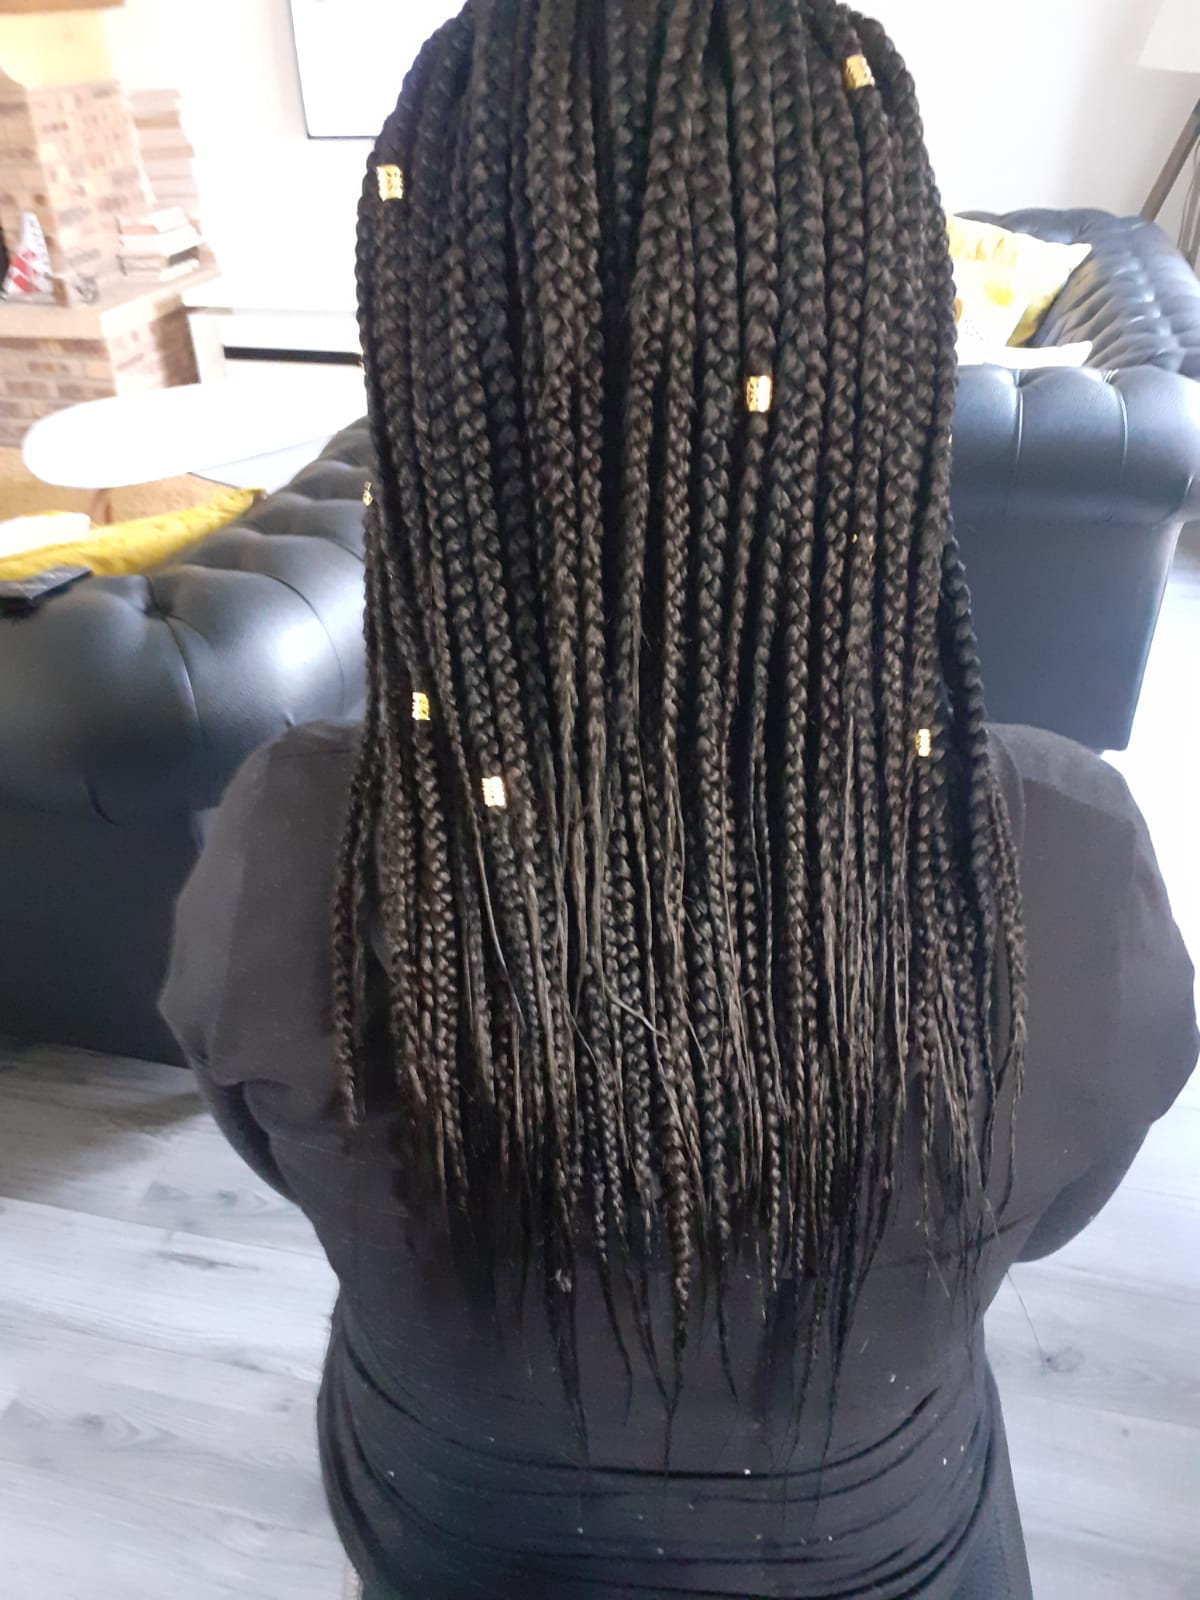 salon de coiffure afro tresse tresses box braids crochet braids vanilles tissages paris 75 77 78 91 92 93 94 95 CRDHSMIB